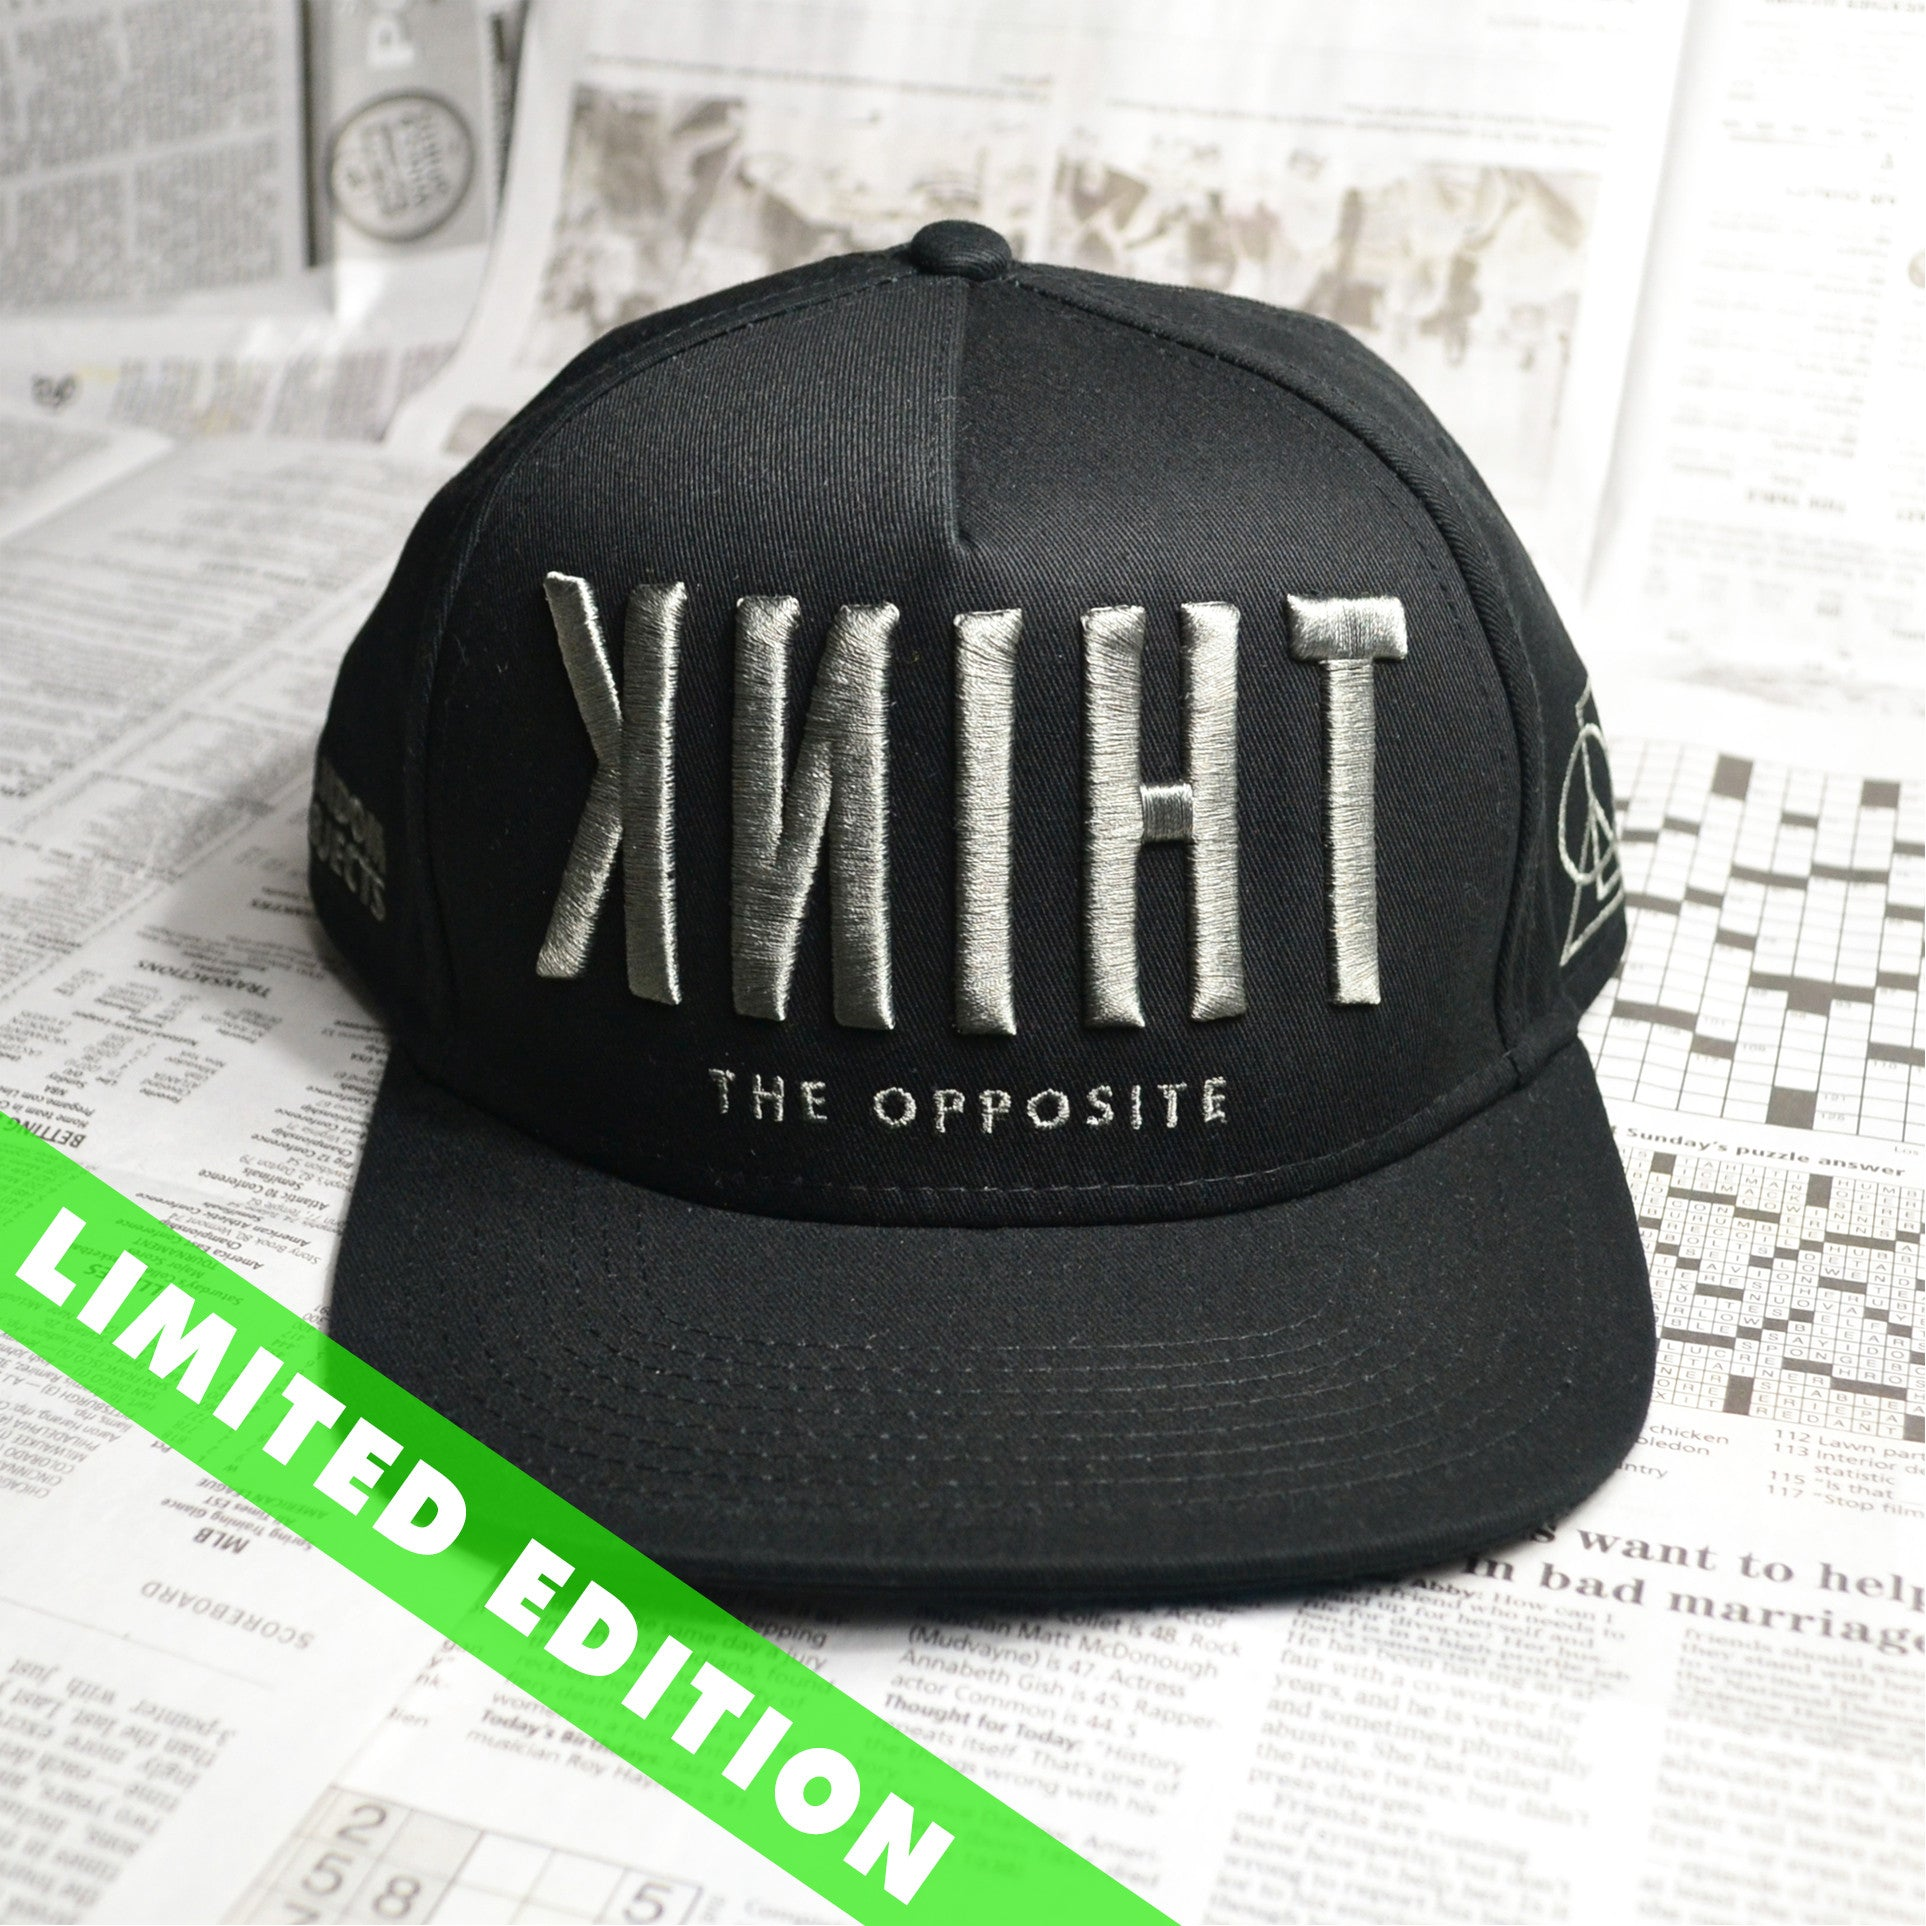 THINK CAP (LIMITED EDITION)